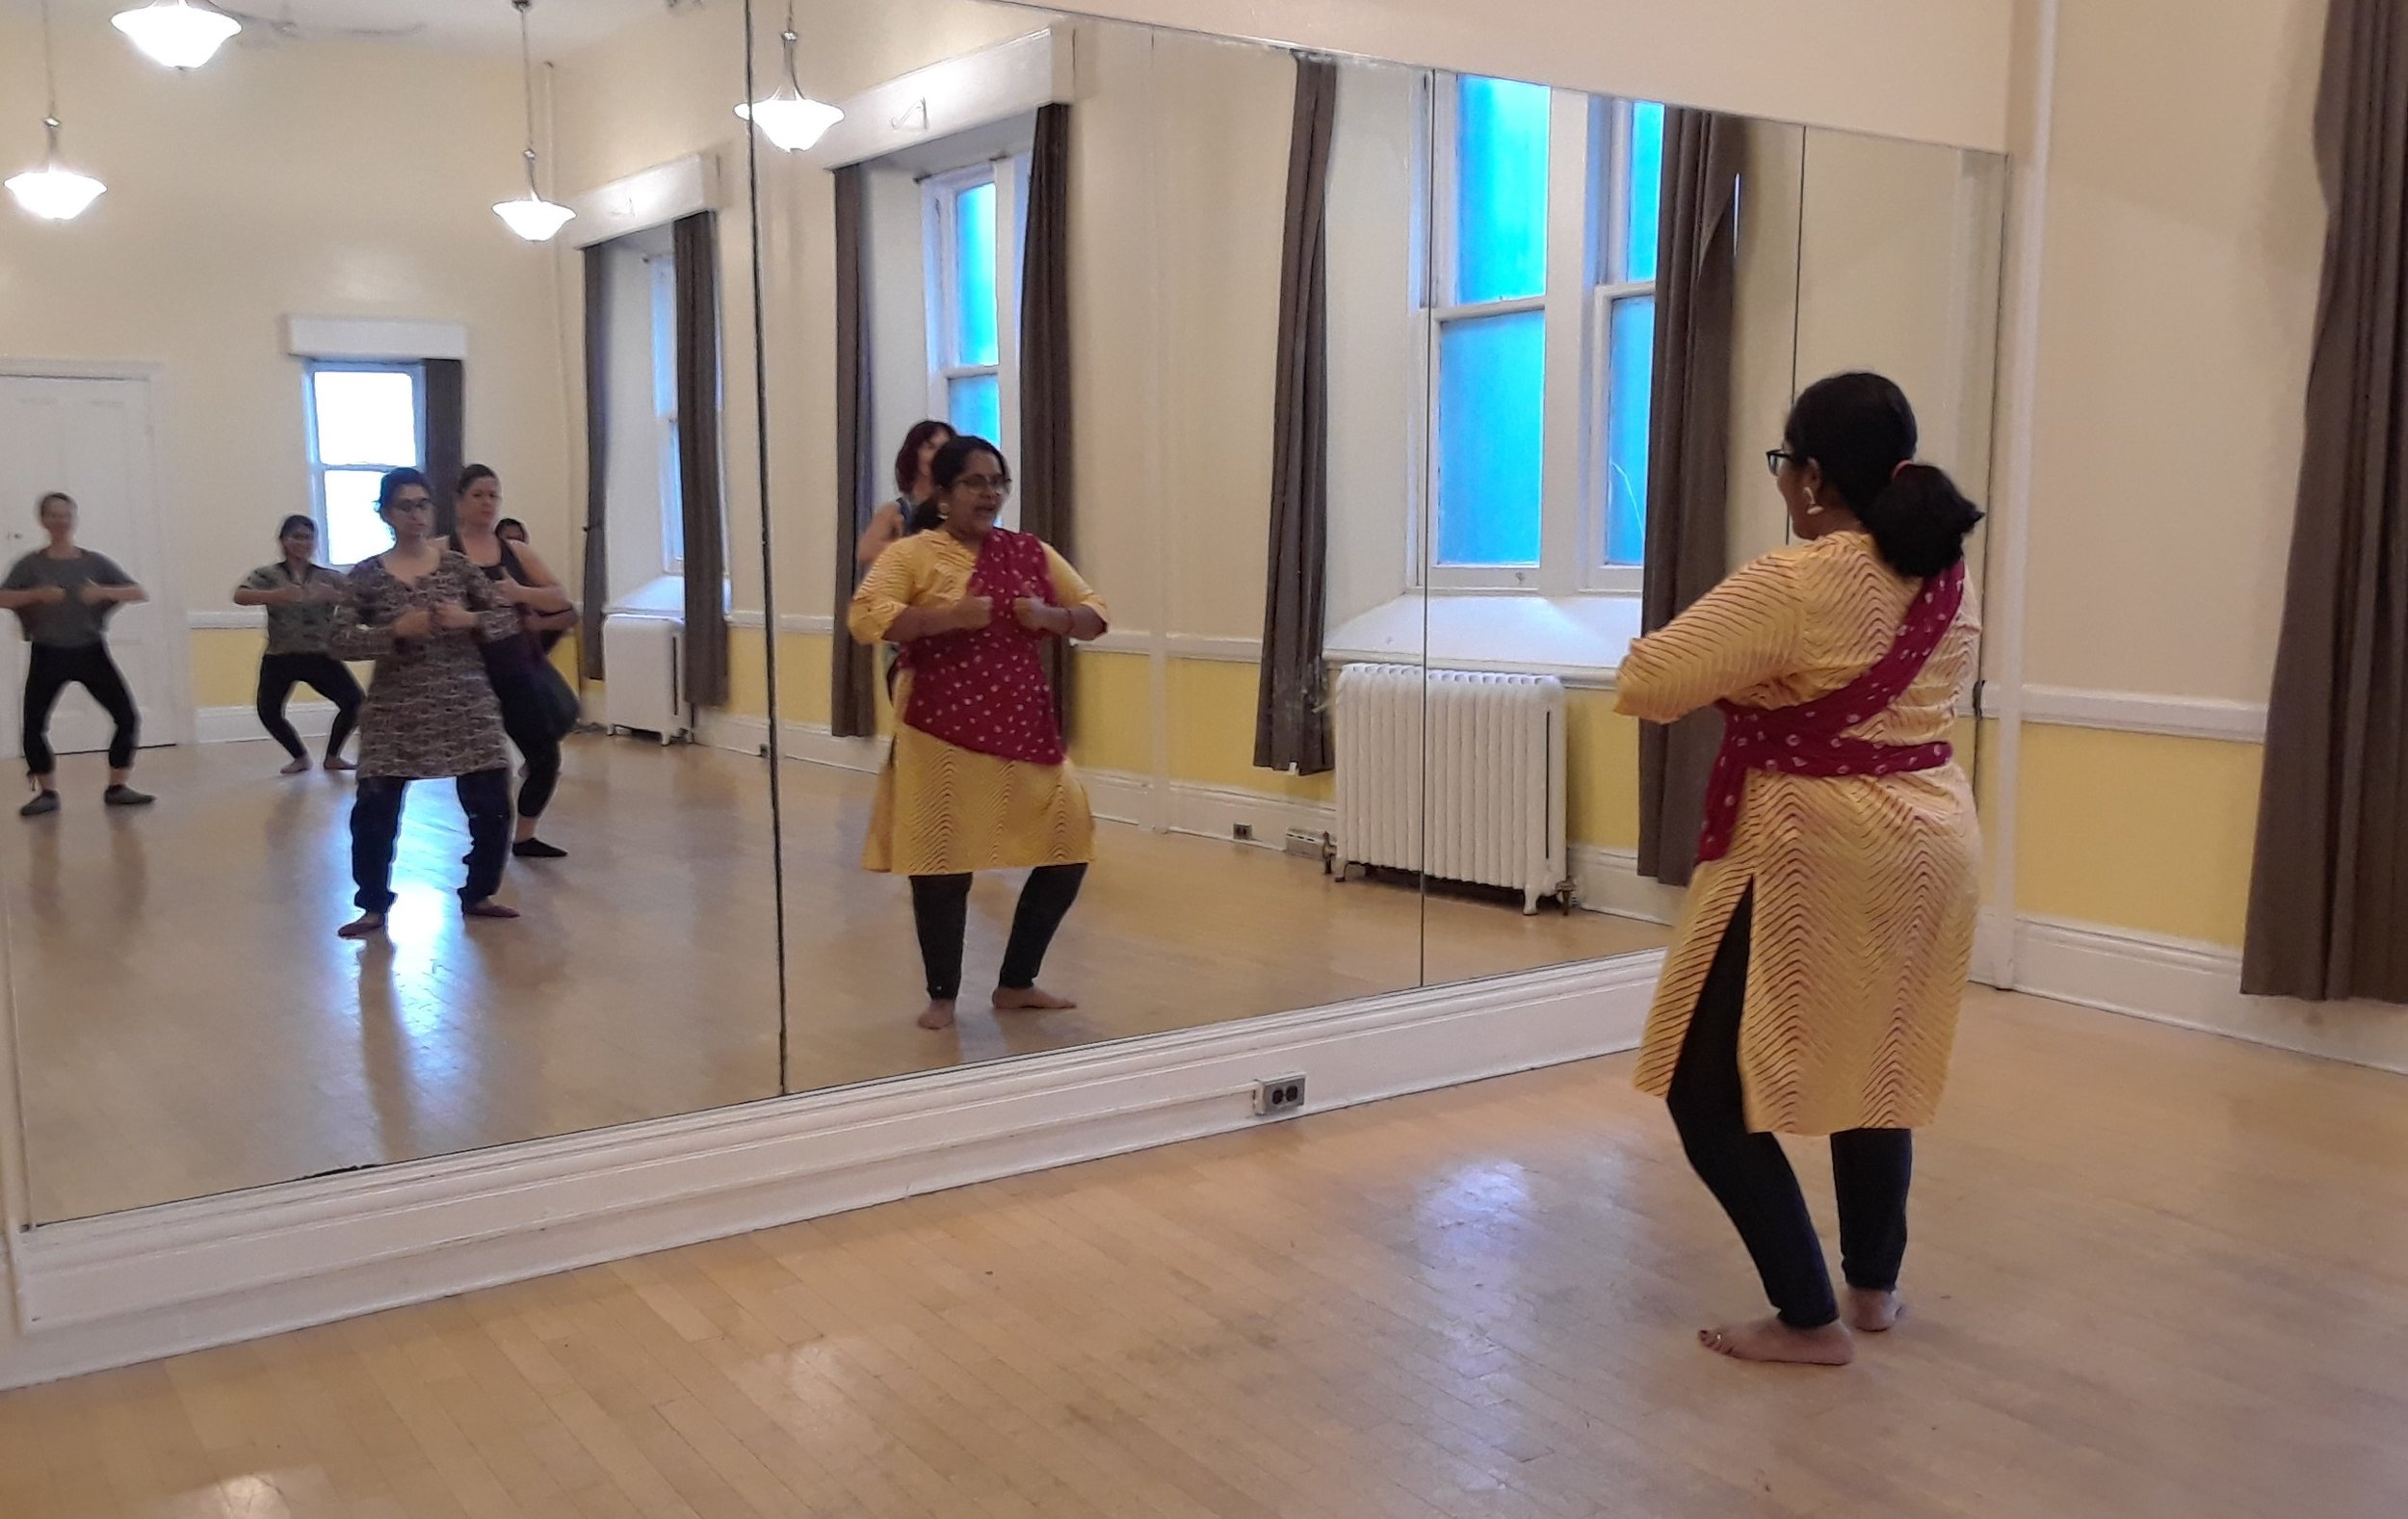 bollywood_and_classical_indian_dance_classes_in_toronto (2).jpg